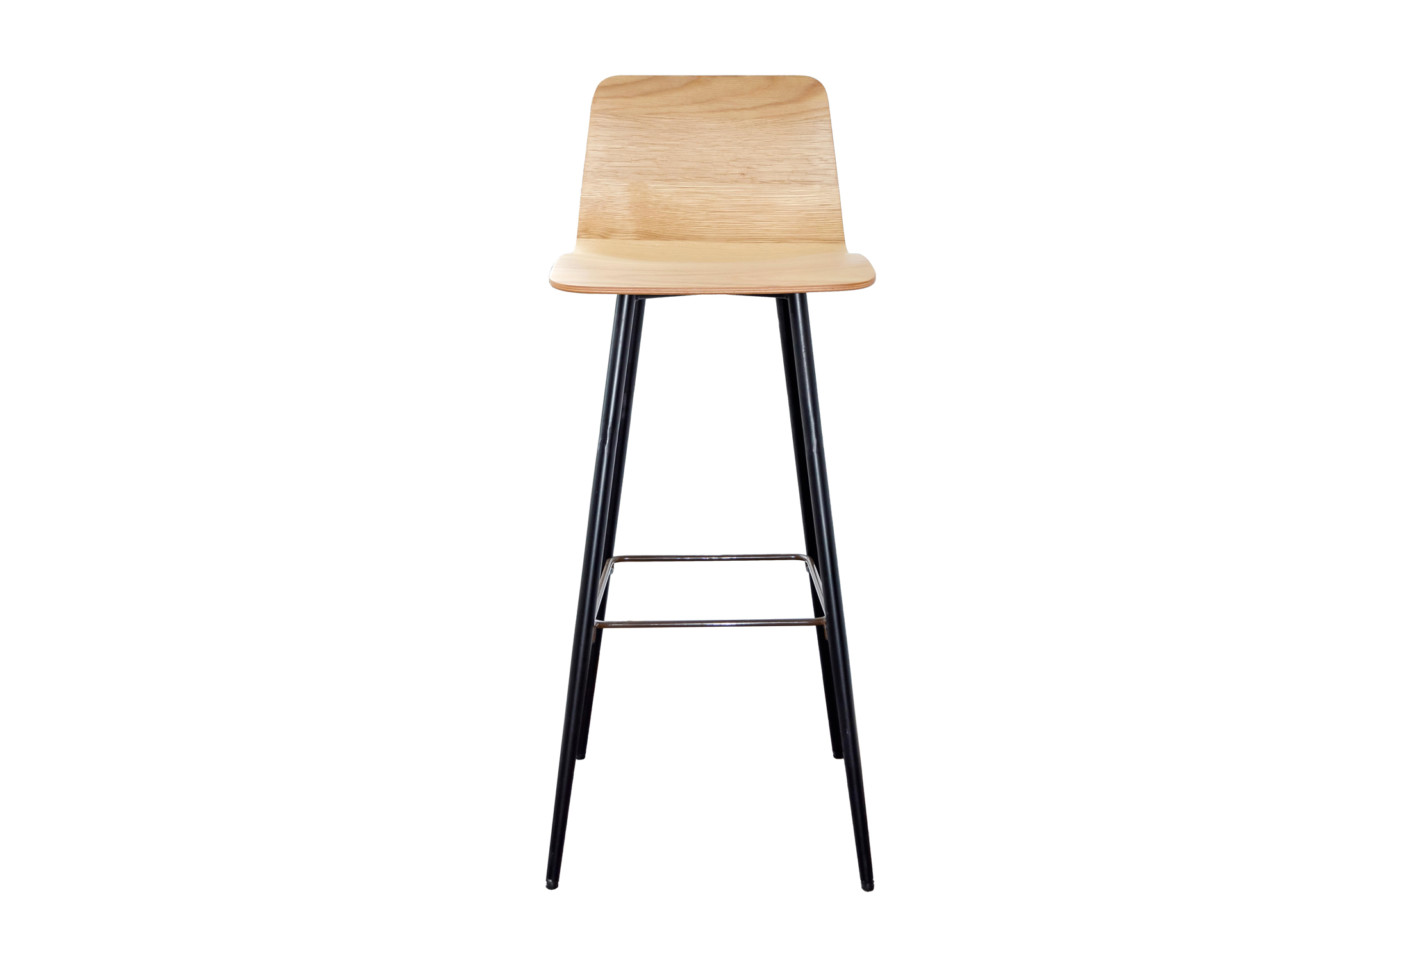 Maverick bar stool by KFF | STYLEPARK